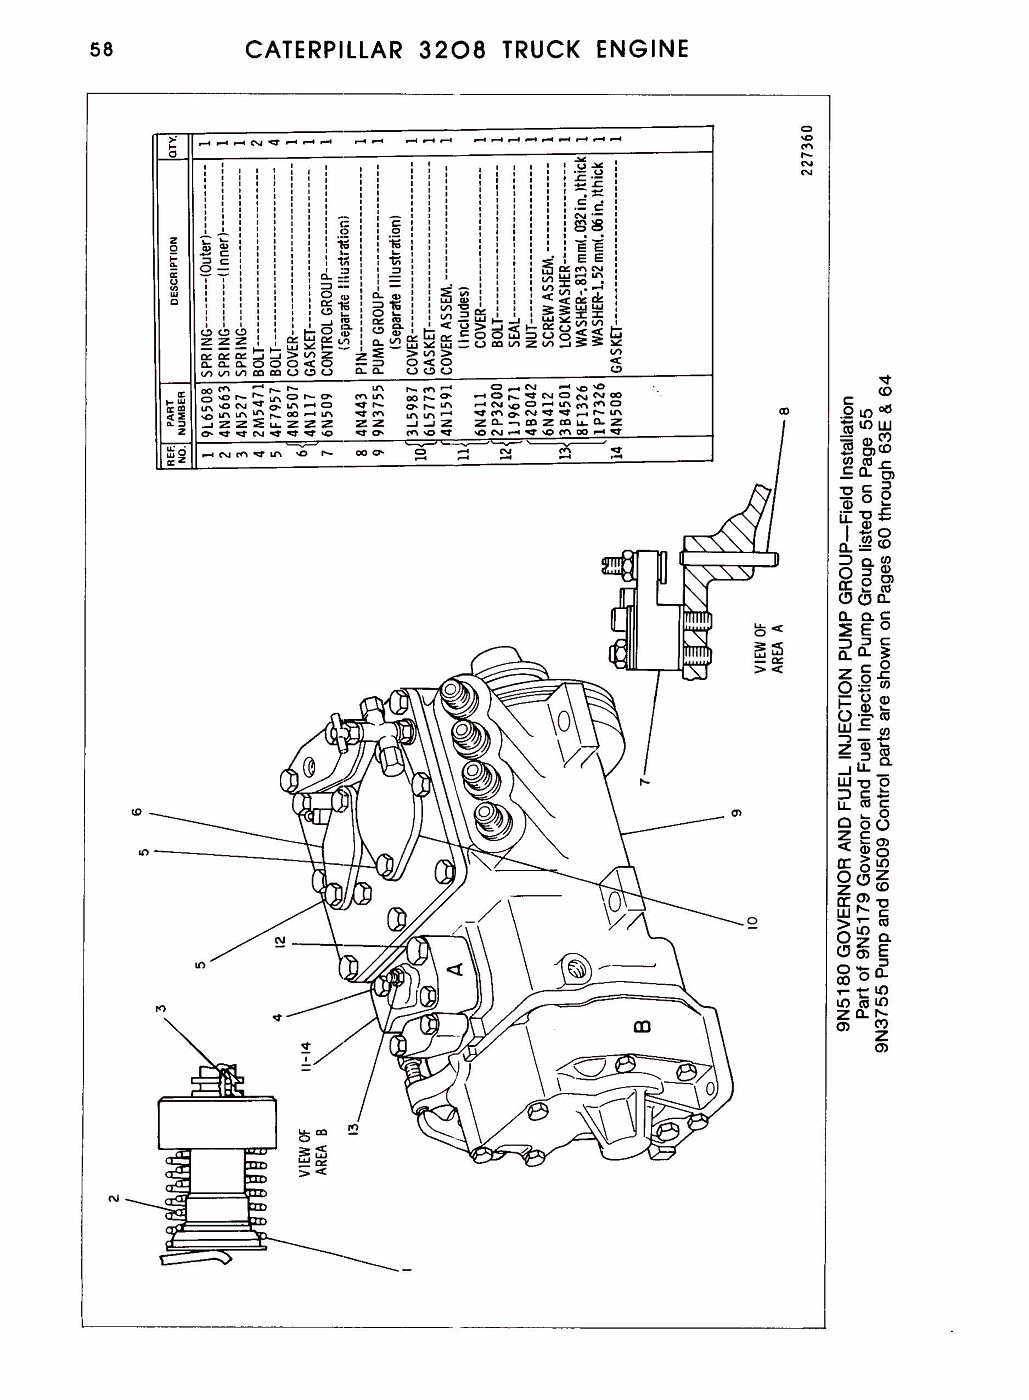 hight resolution of parts manual cat 3208 wiring numbers caterpillar 3208 caterpillar 3208 alternator wiring diagram caterpillar 3208 engine pdf caterpillar 3208 parts diagram